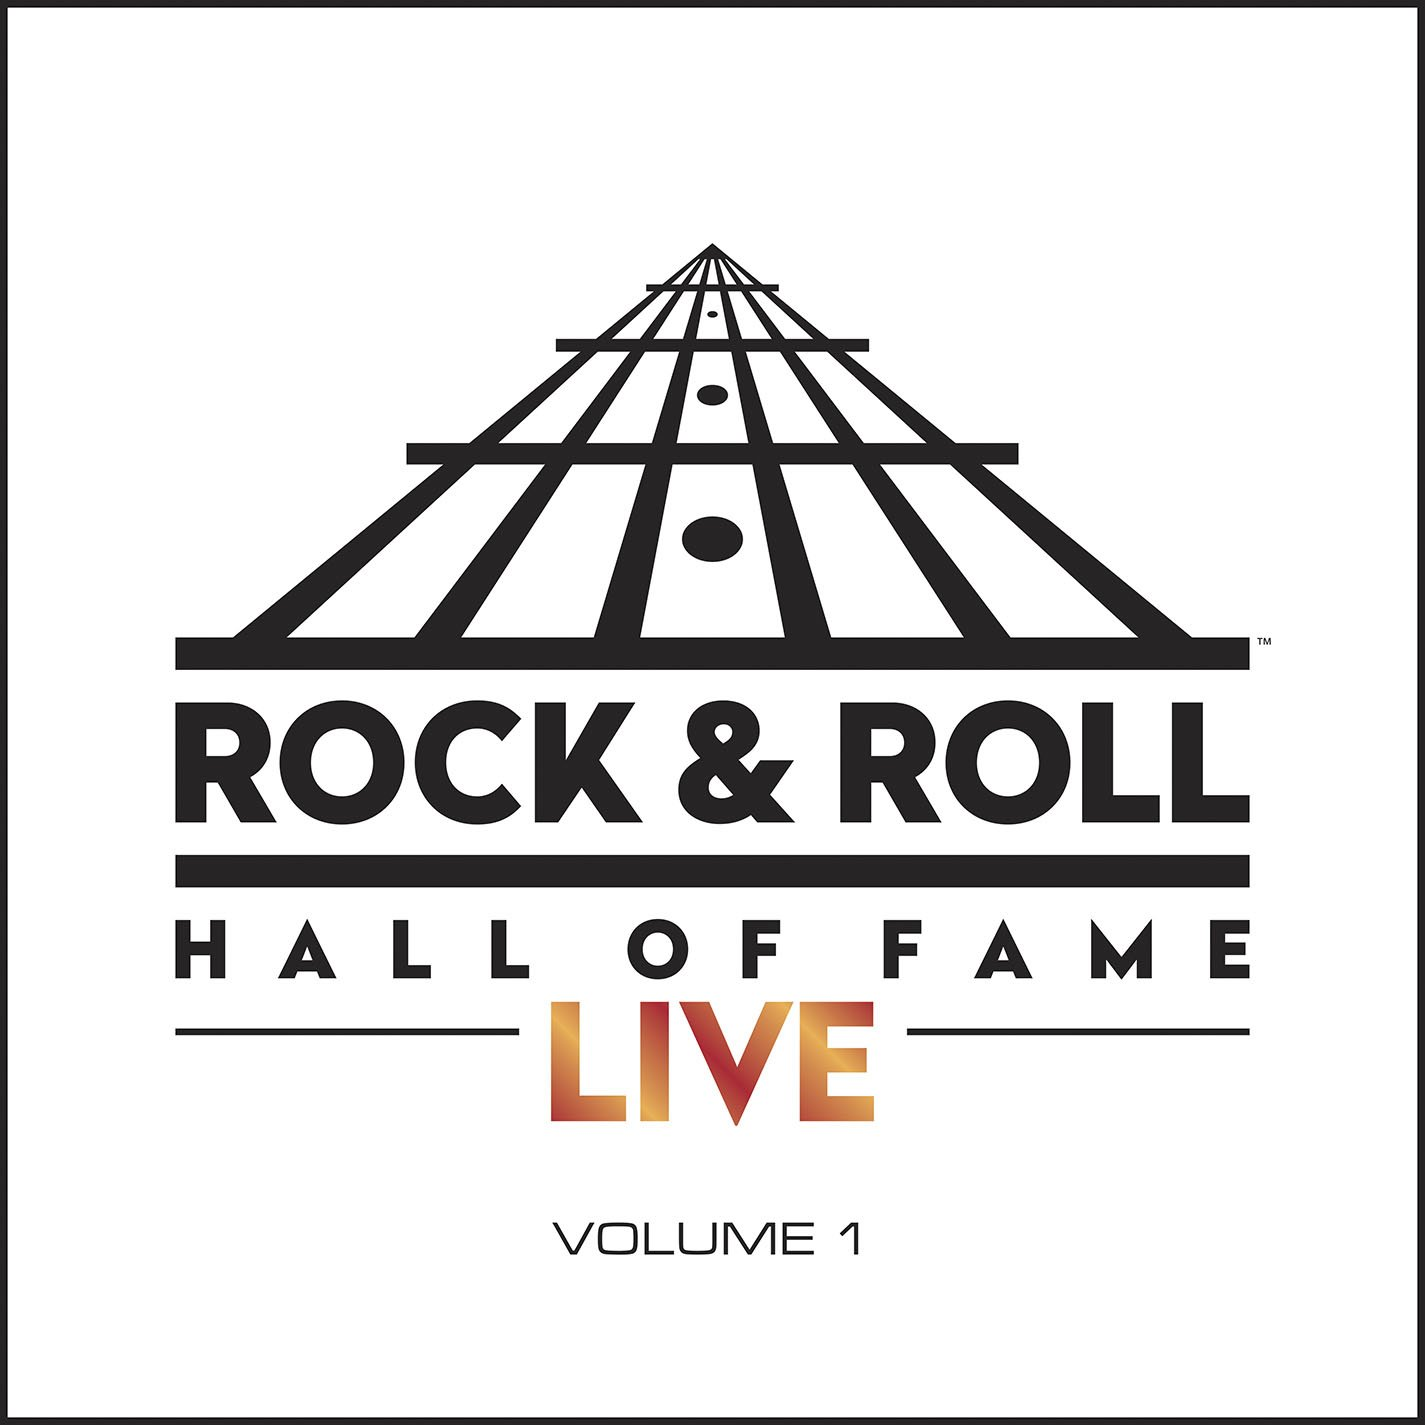 The Rock And Roll Hall Of Fame LIVE: Volume 1 Limited Edition (Purple Color Vinyl) by WARNER ELEKTRA ATLANTIC (WEA)